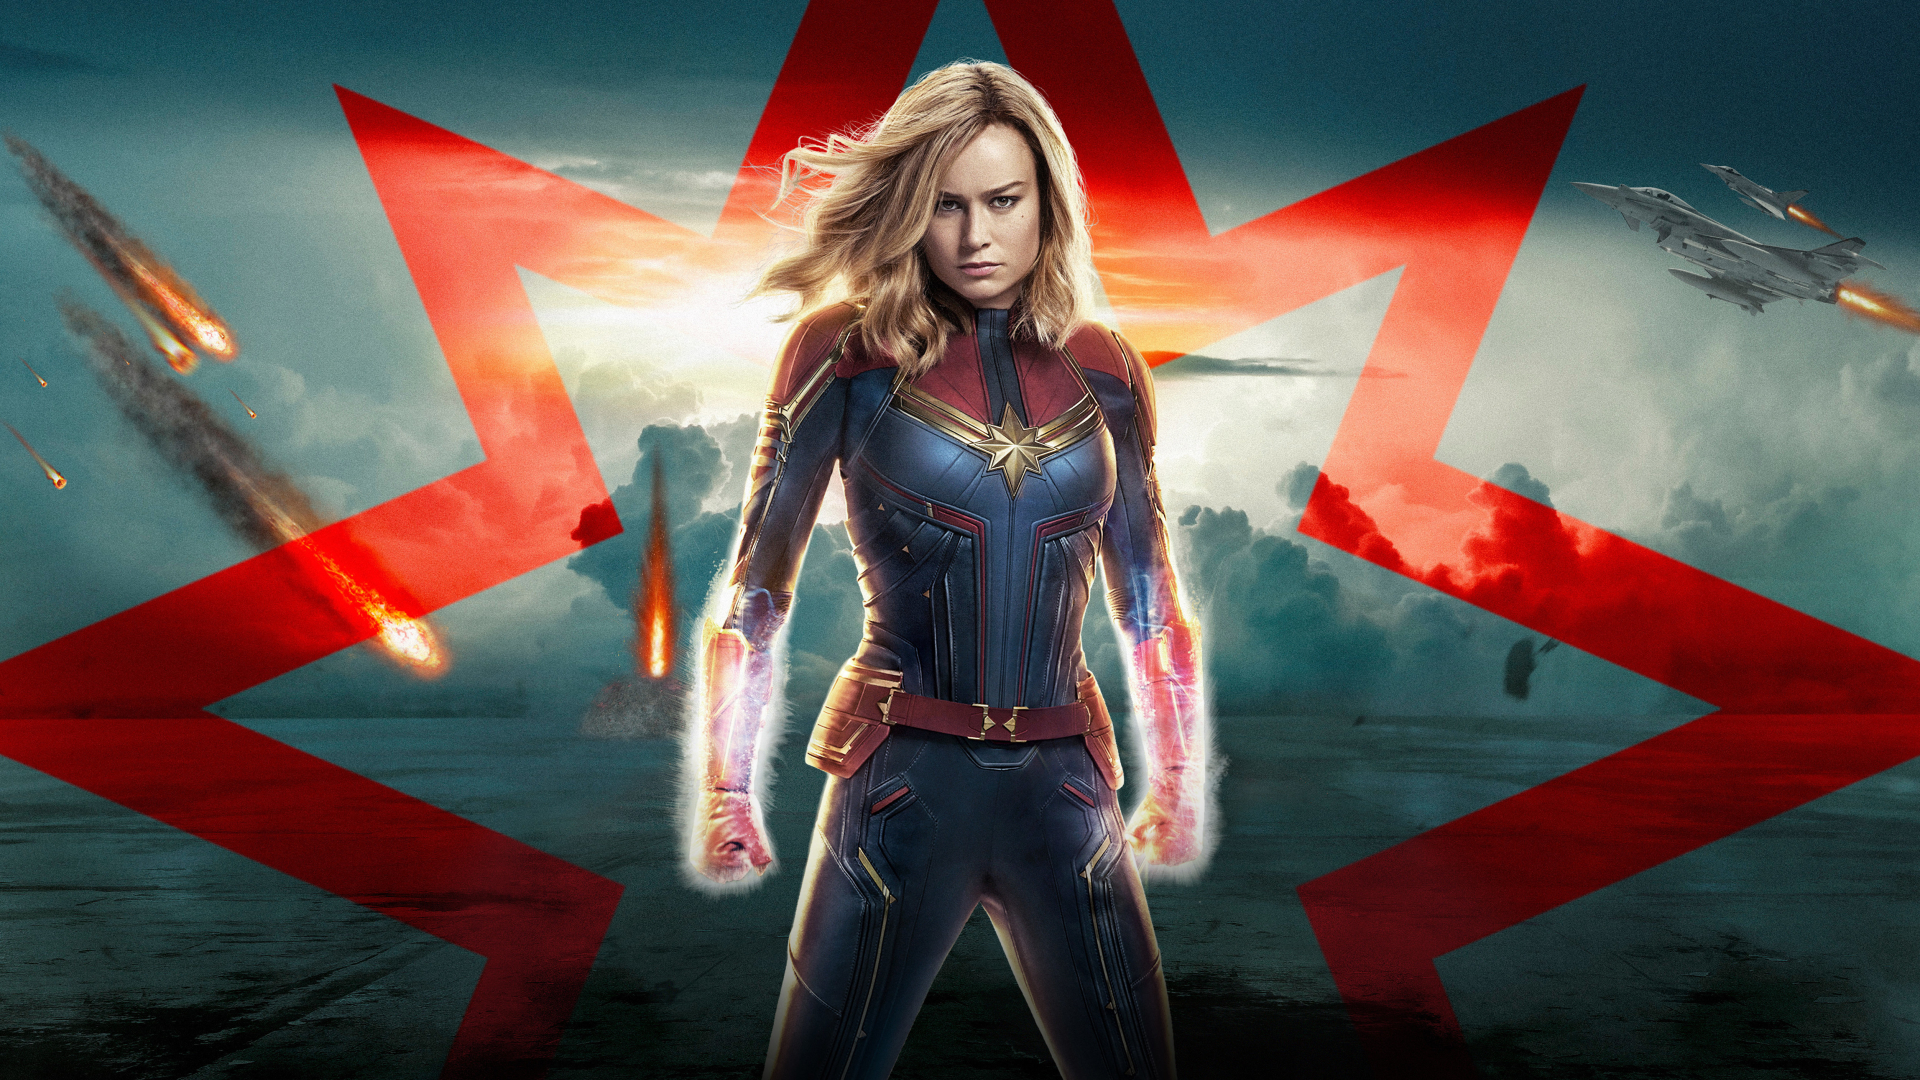 1920x1080 Captain Marvel 2019 Movie 1080p Laptop Full Hd Wallpaper Hd Movies 4k Wallpapers Images Photos And Background